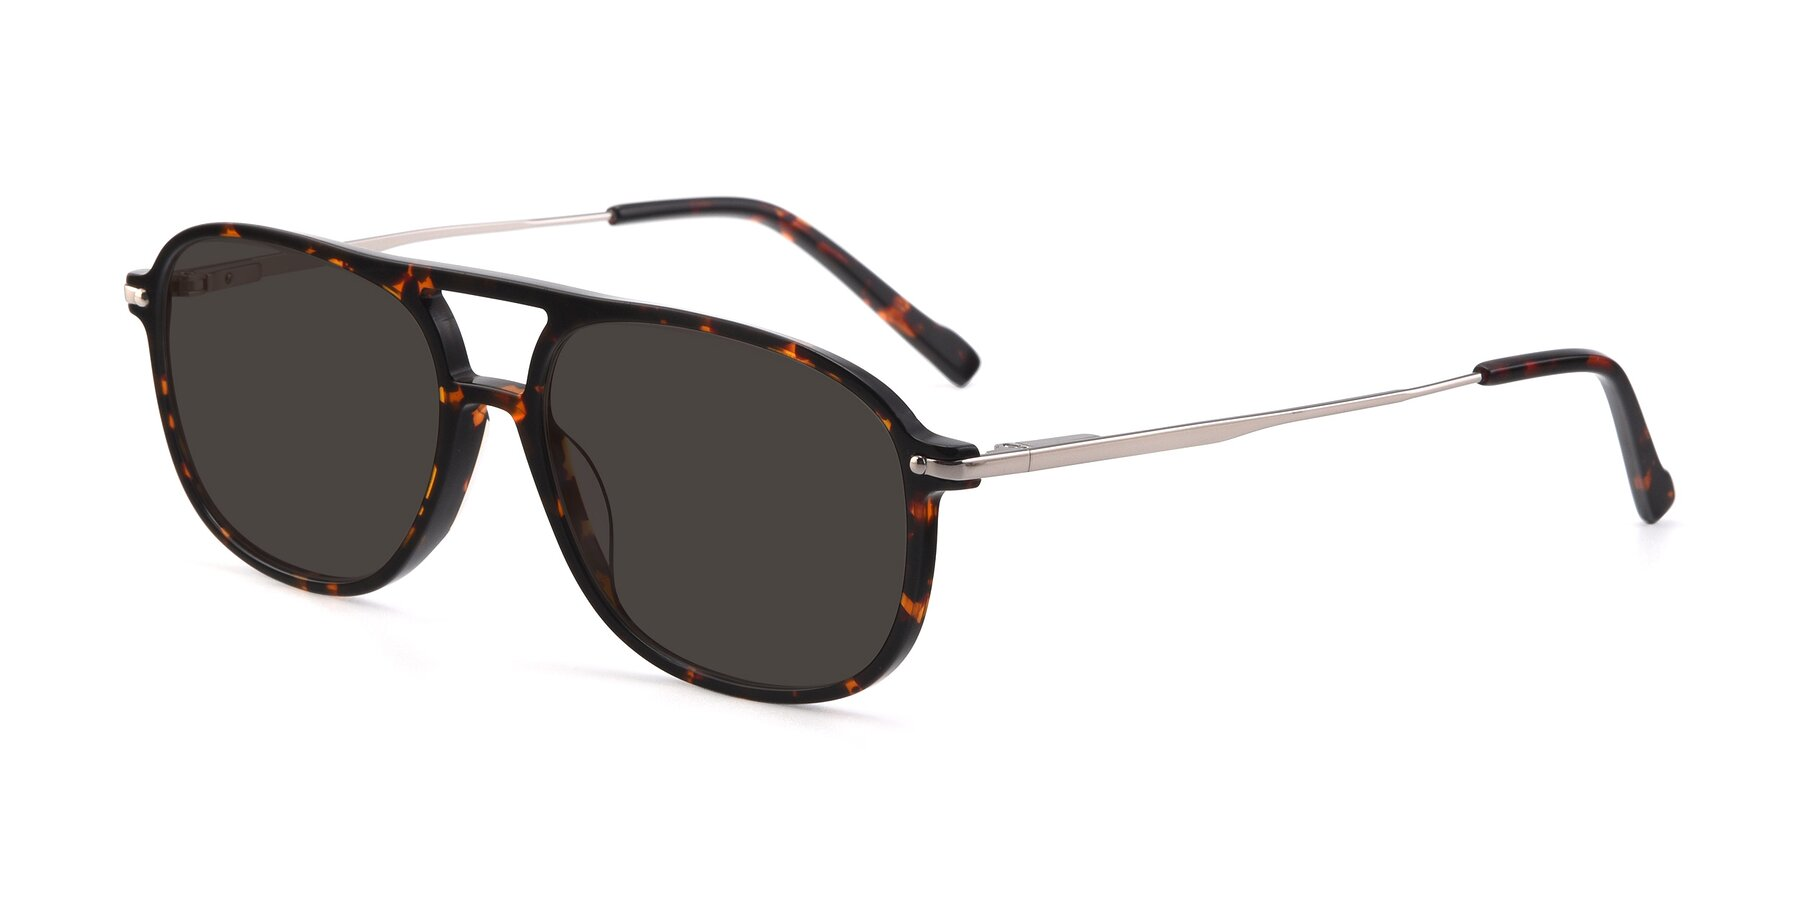 Angle of 17580 in Tortoise with Gray Tinted Lenses